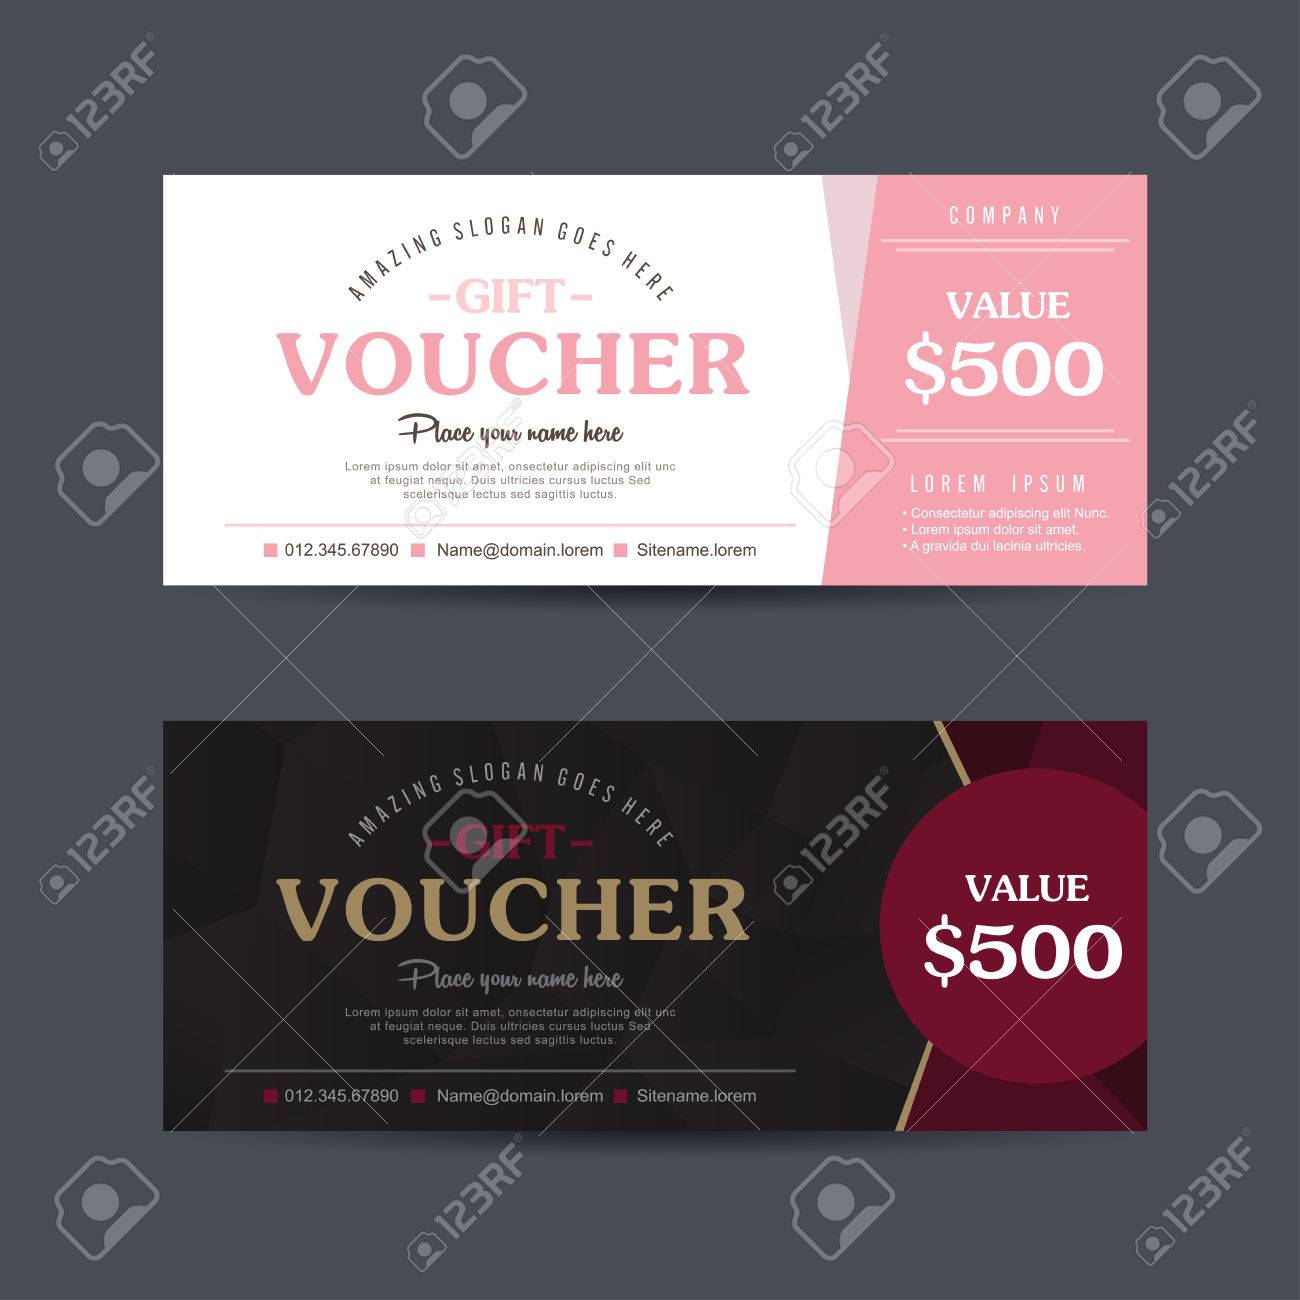 Gift Voucher Template With Colorful Pattern cute Gift Voucher     Gift voucher template with colorful pattern cute gift voucher certificate  coupon design template  Collection